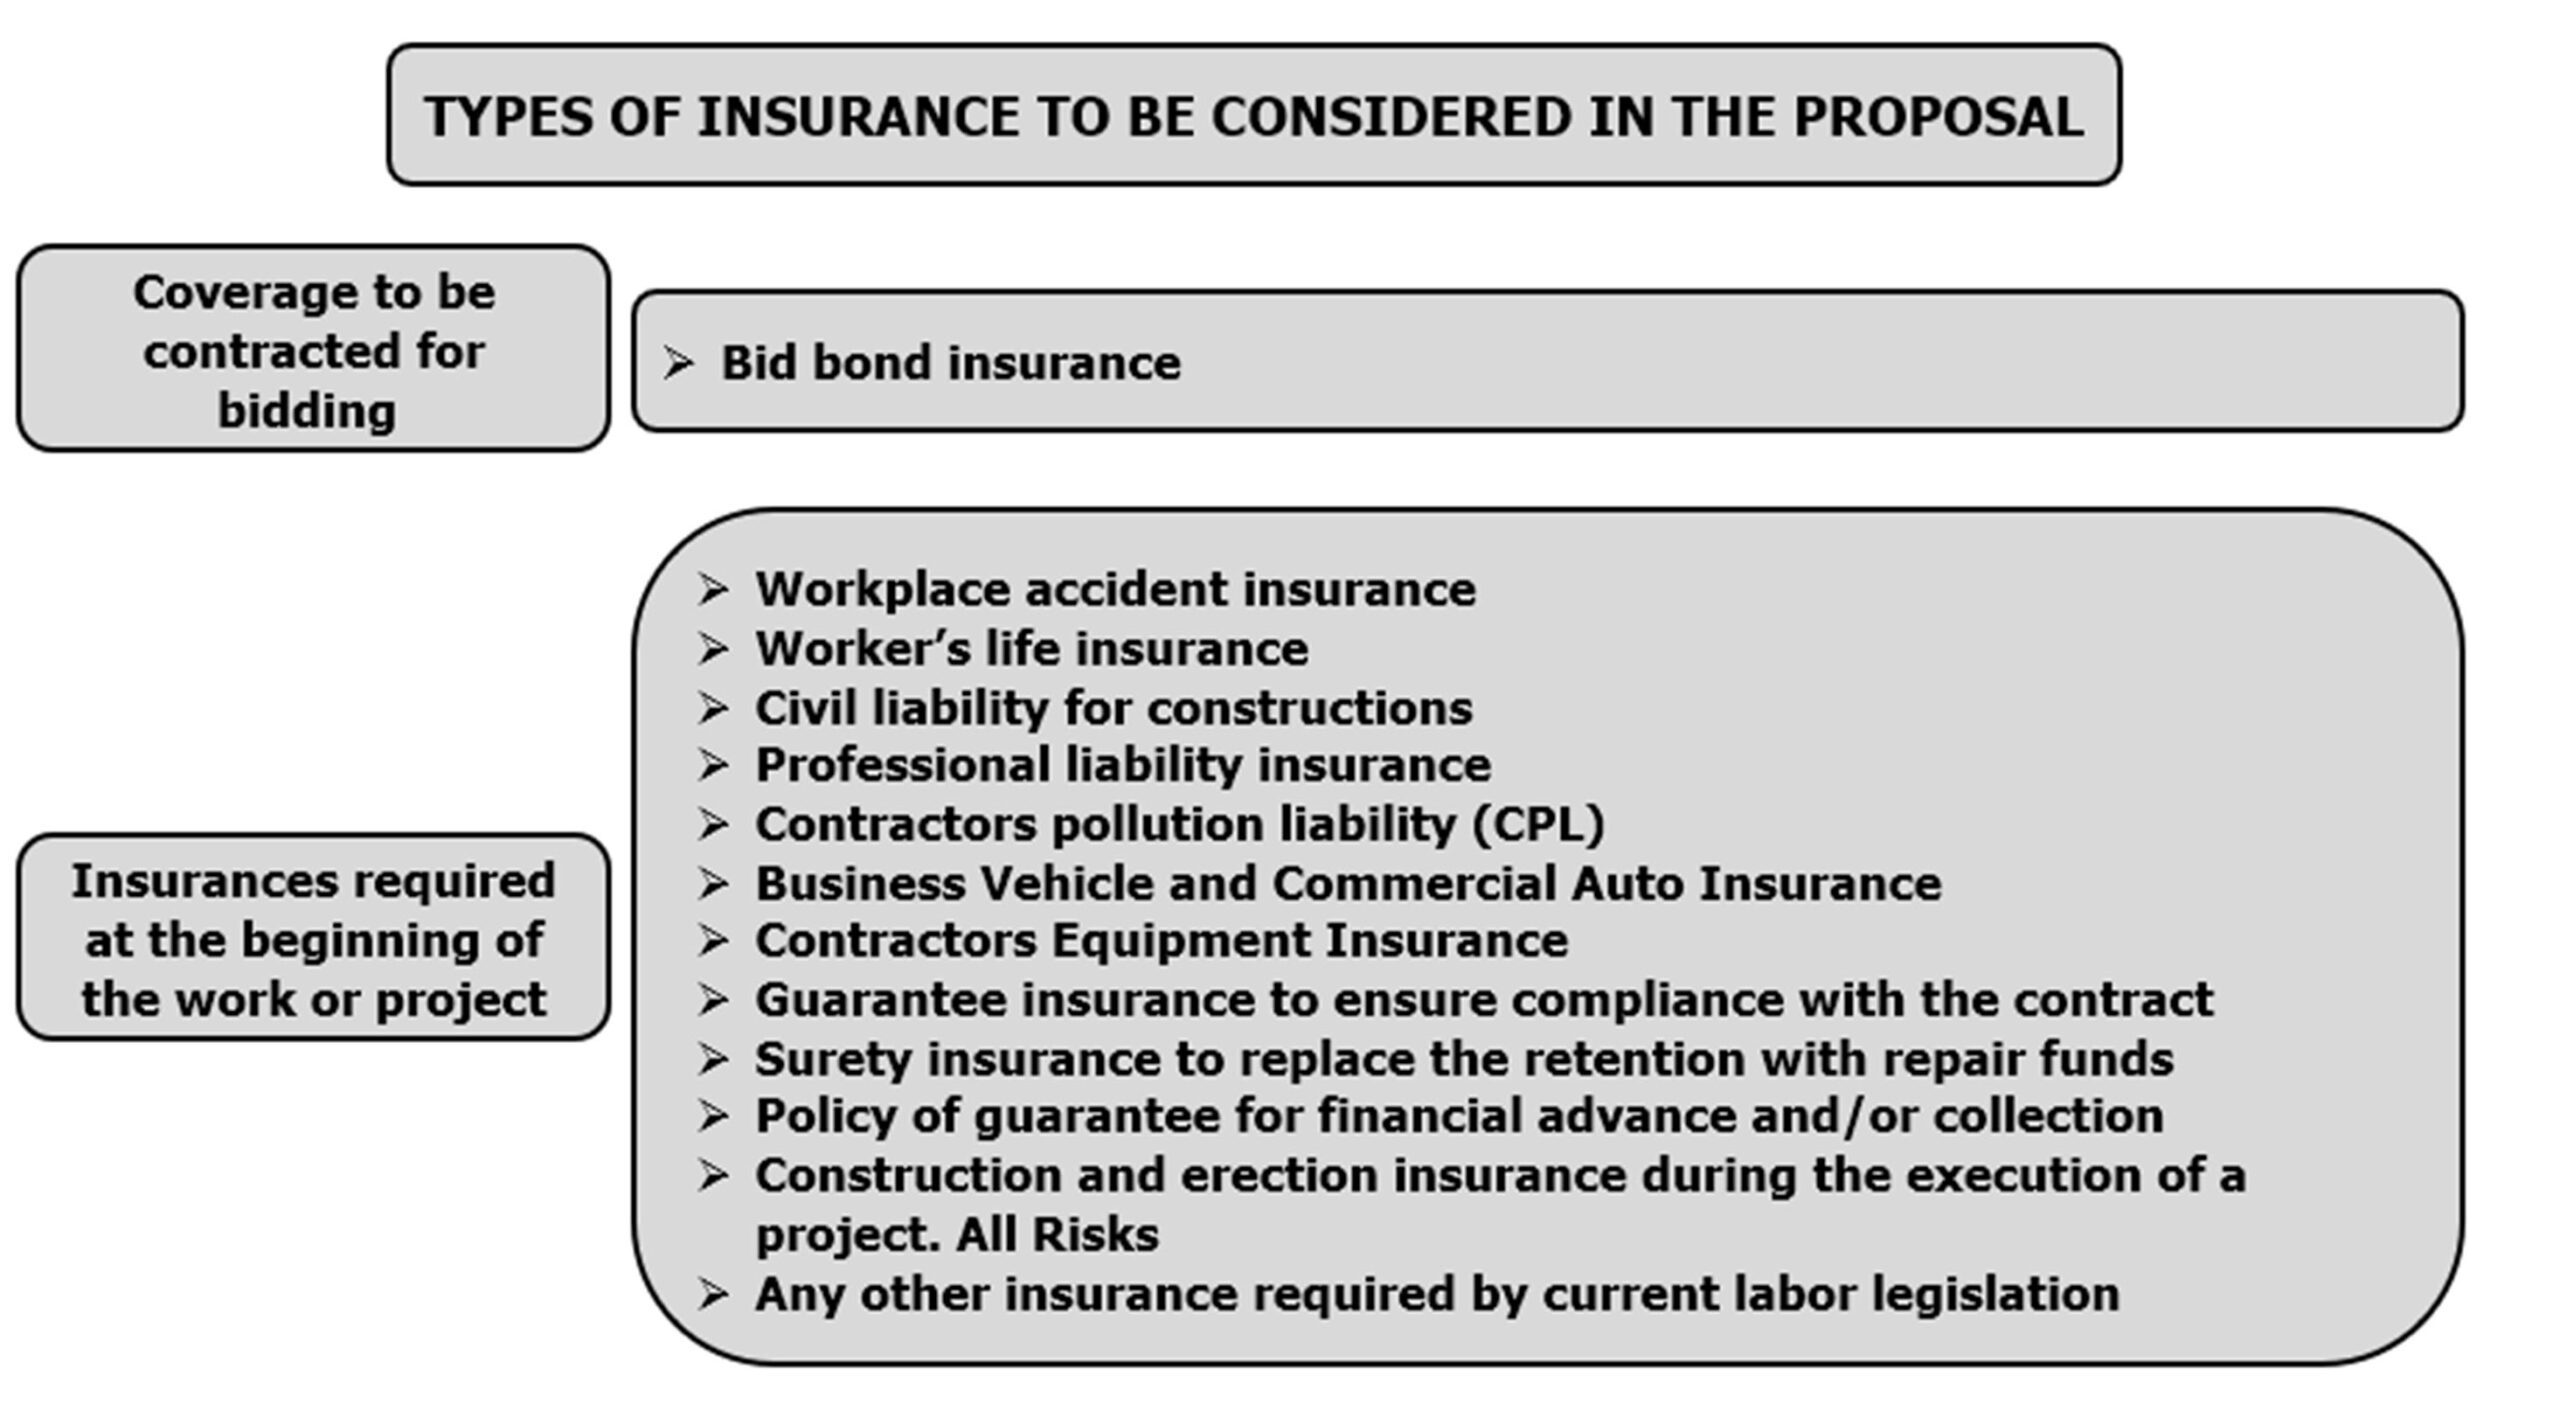 Calculatemanhours.com, How to calculate insurance cost